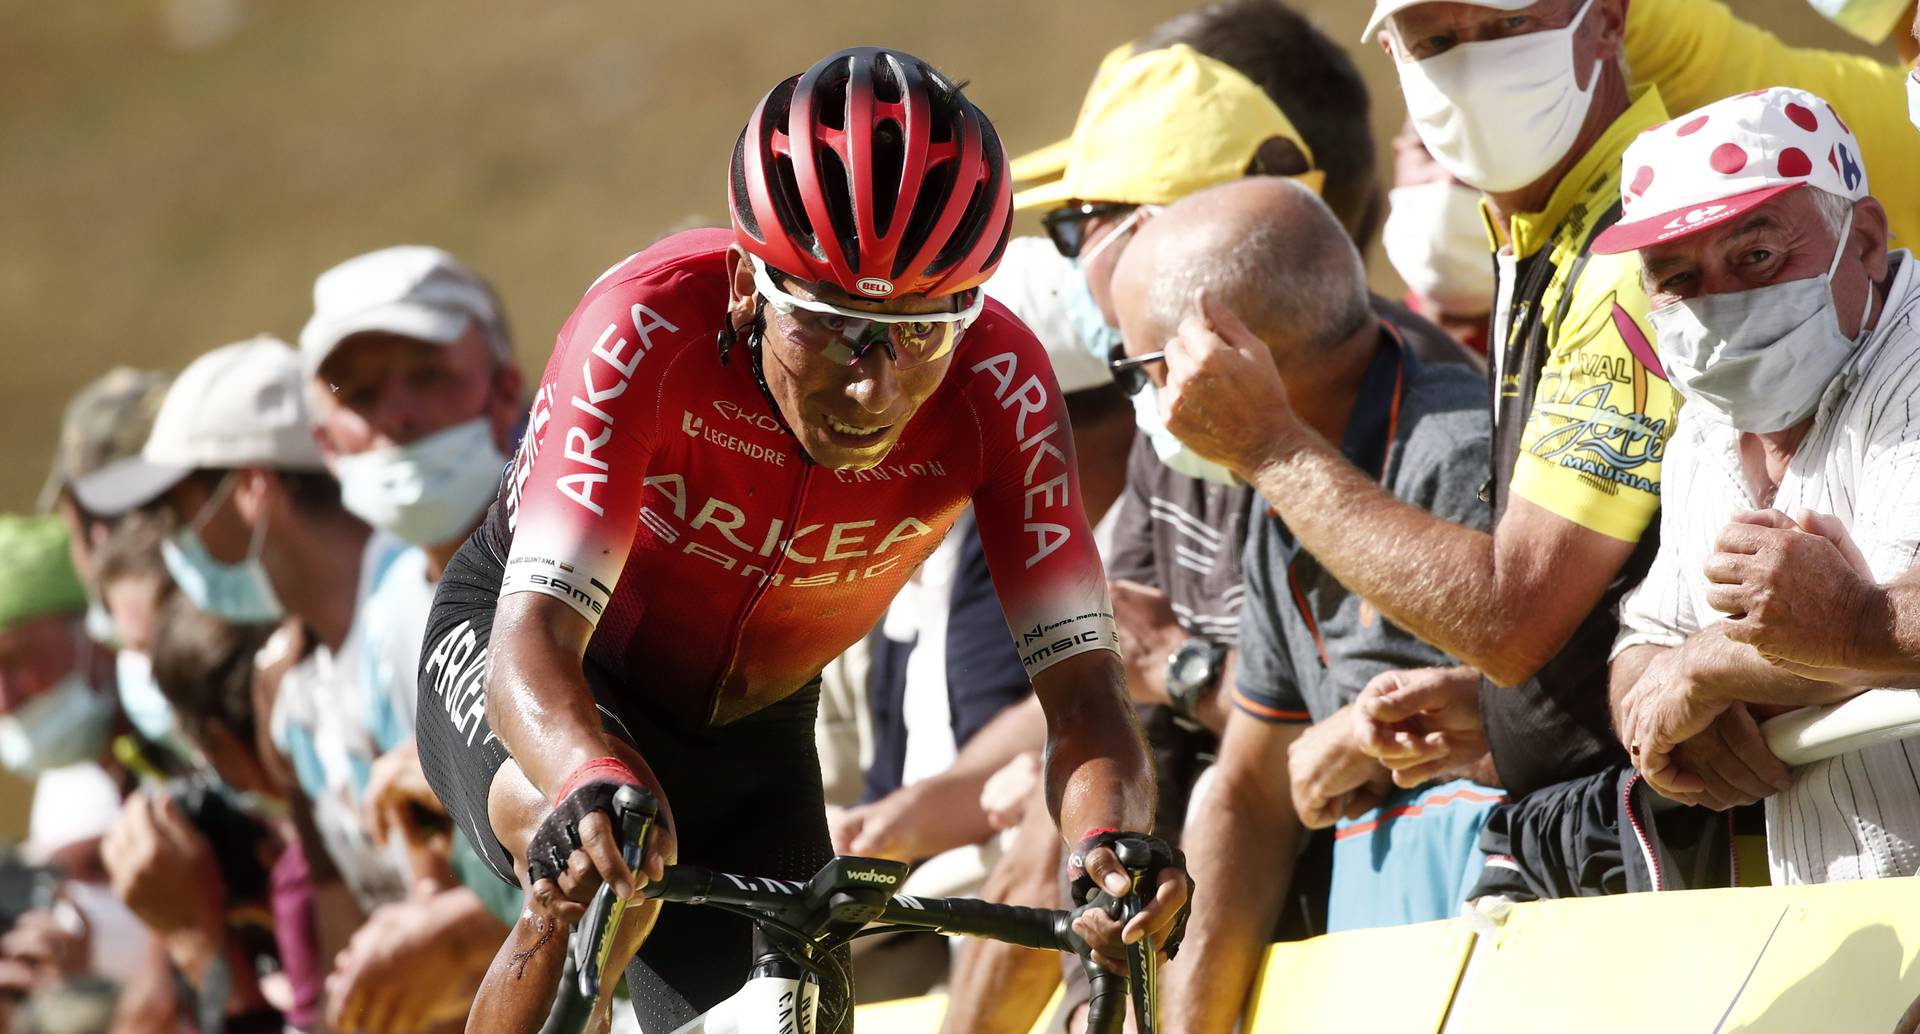 Colombia's Nairo Quintana crosses the finish line of the stage 13 of the Tour de France cycling race over 191 kilometers from Chatel-Guyon to Puy Mary, Friday, Sept. 11, 2020. (Benoit Tessier, Pool via AP)